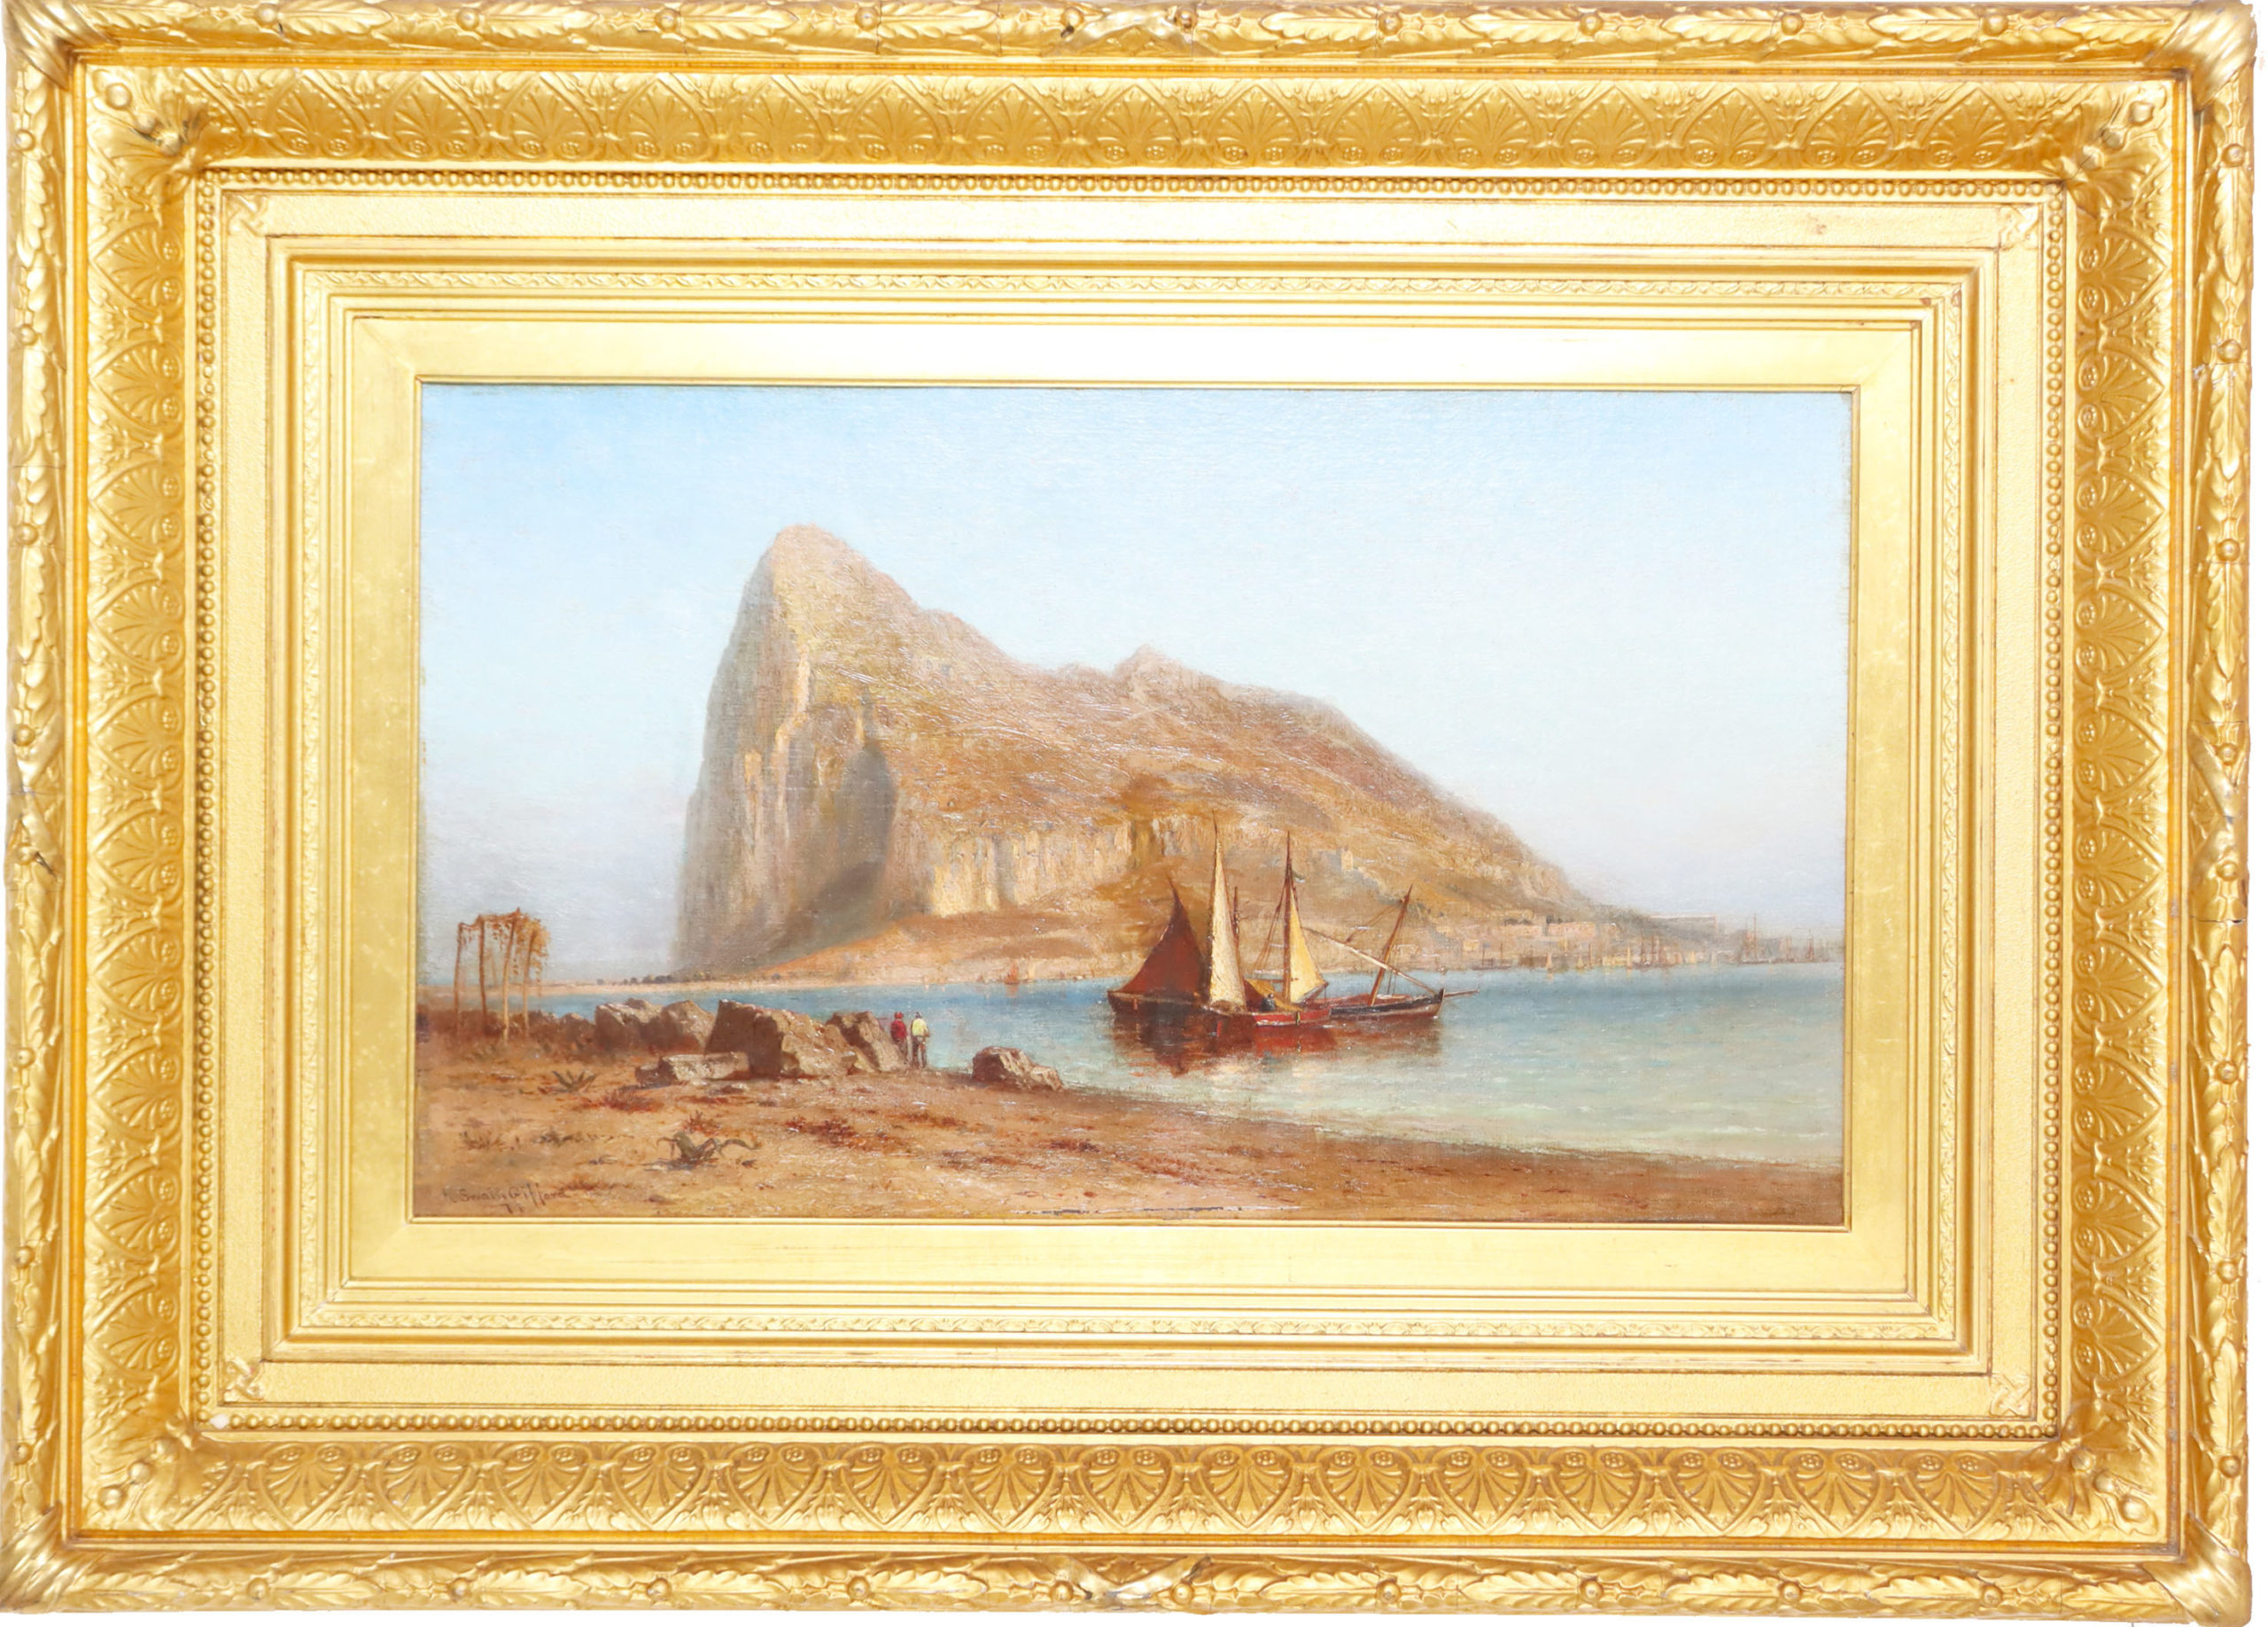 You are currently viewing Robert Swain Gifford (1840-1905) Oil on Canvas